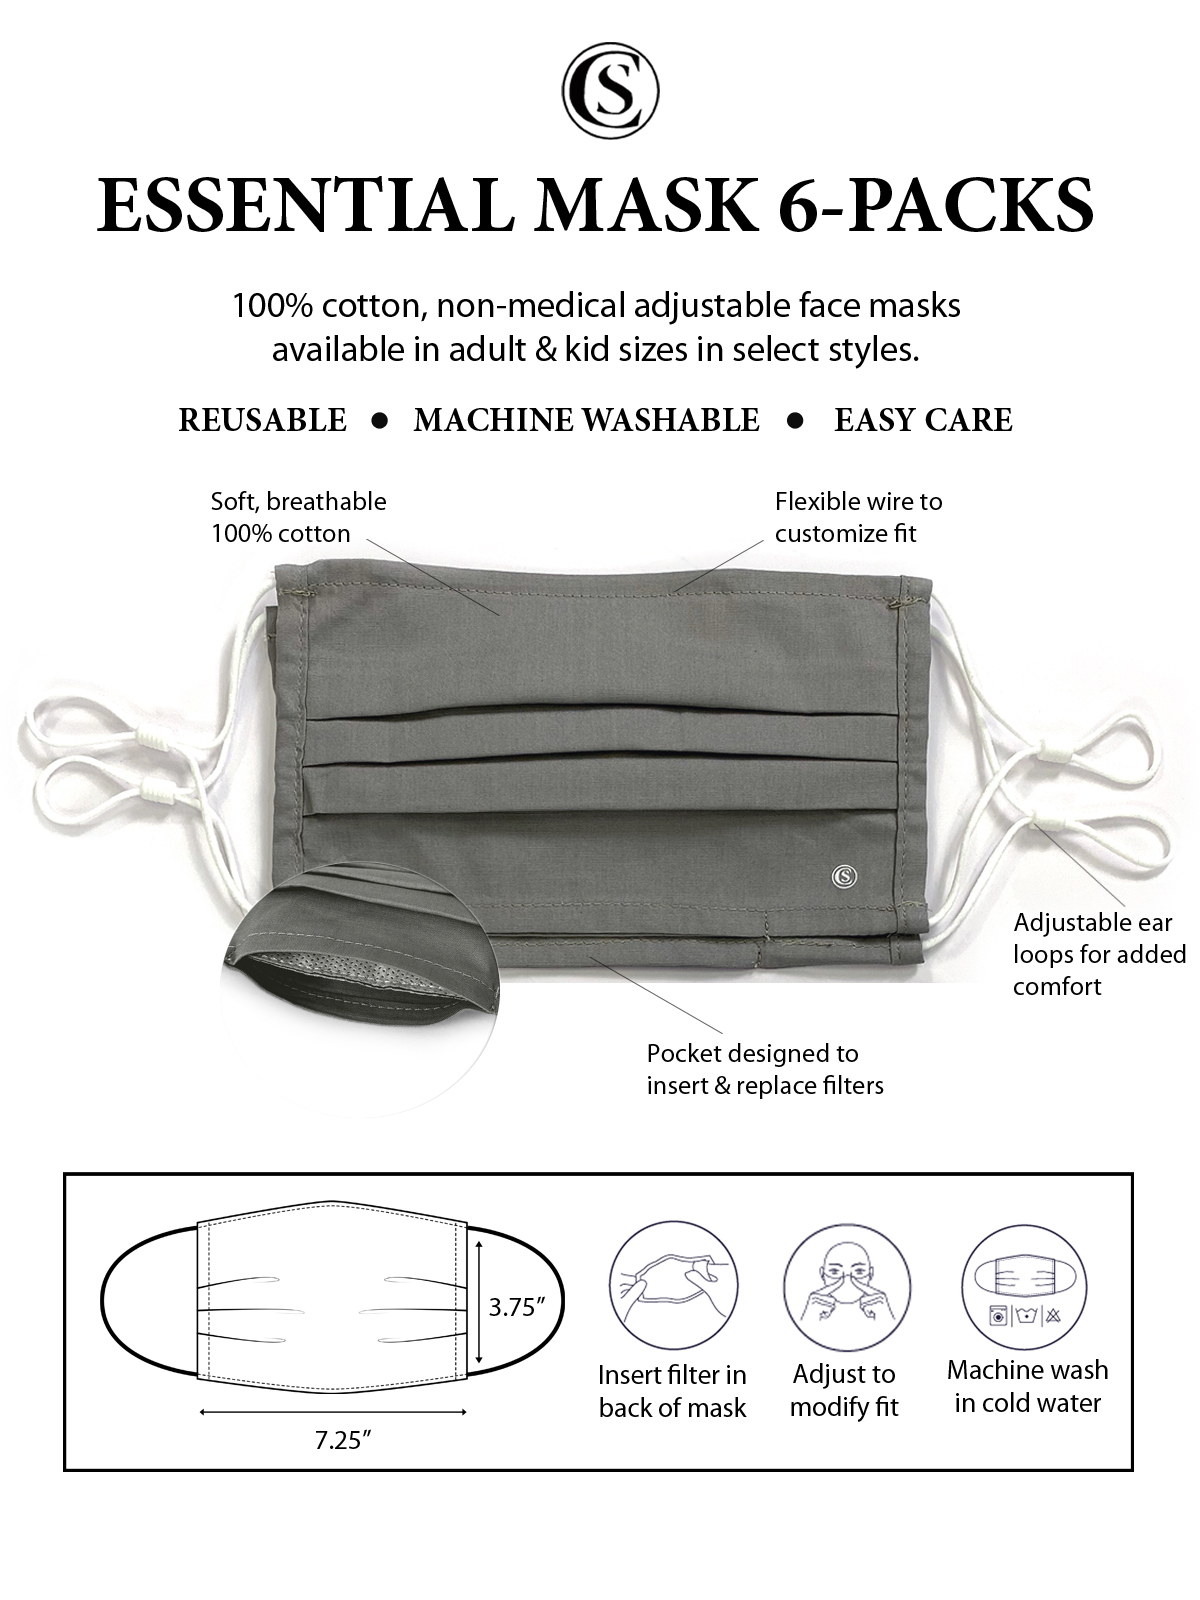 ROSE PLEATED MASK 6-PACK